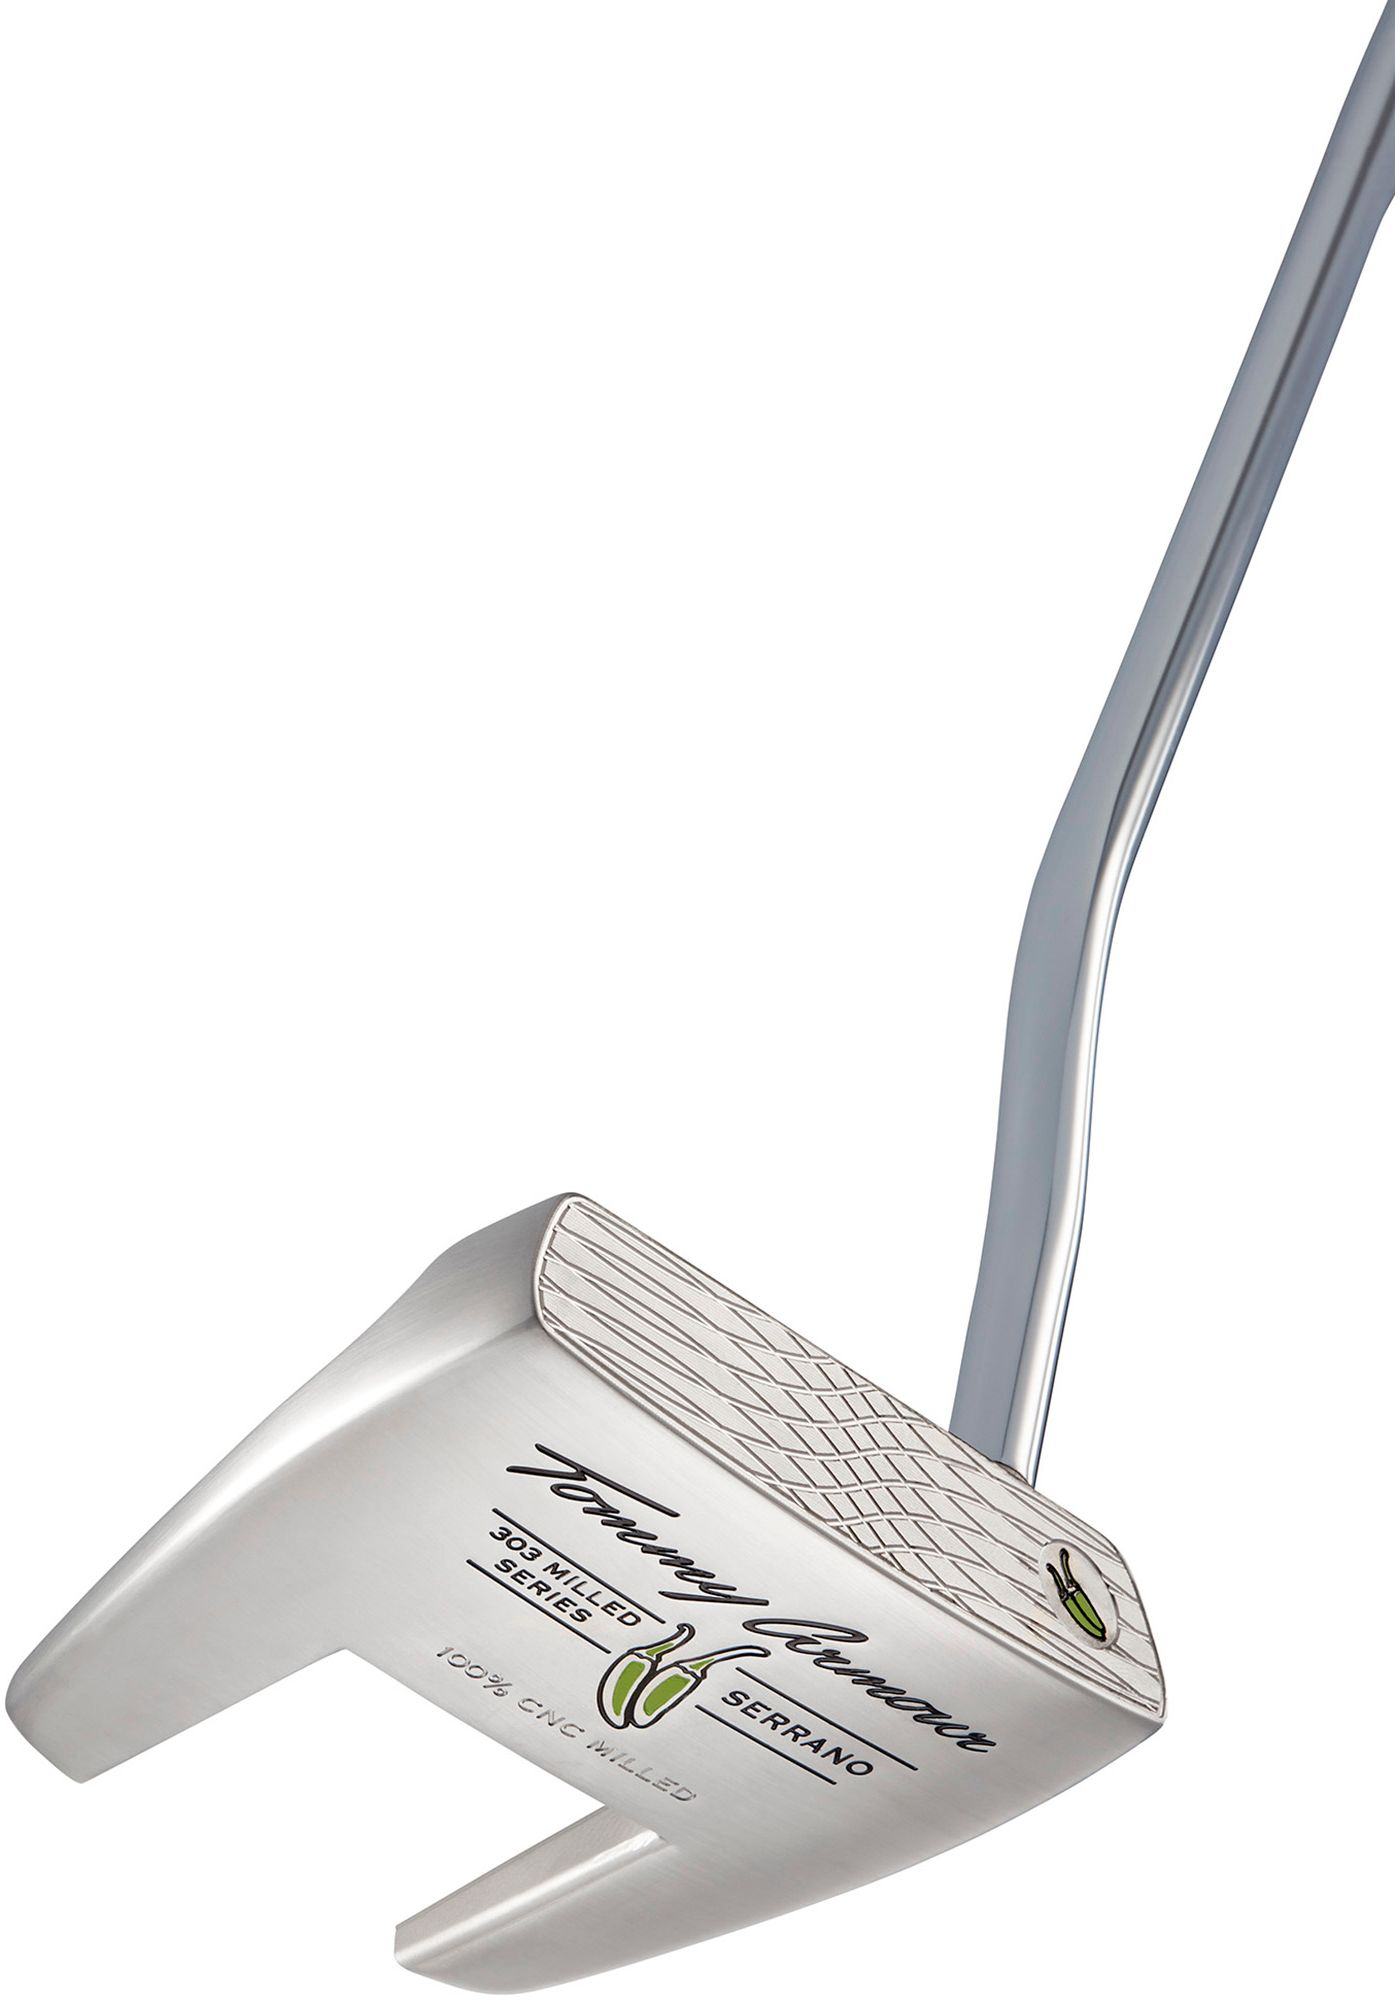 Tommy Armour 303 Milled Series Serrano Putter